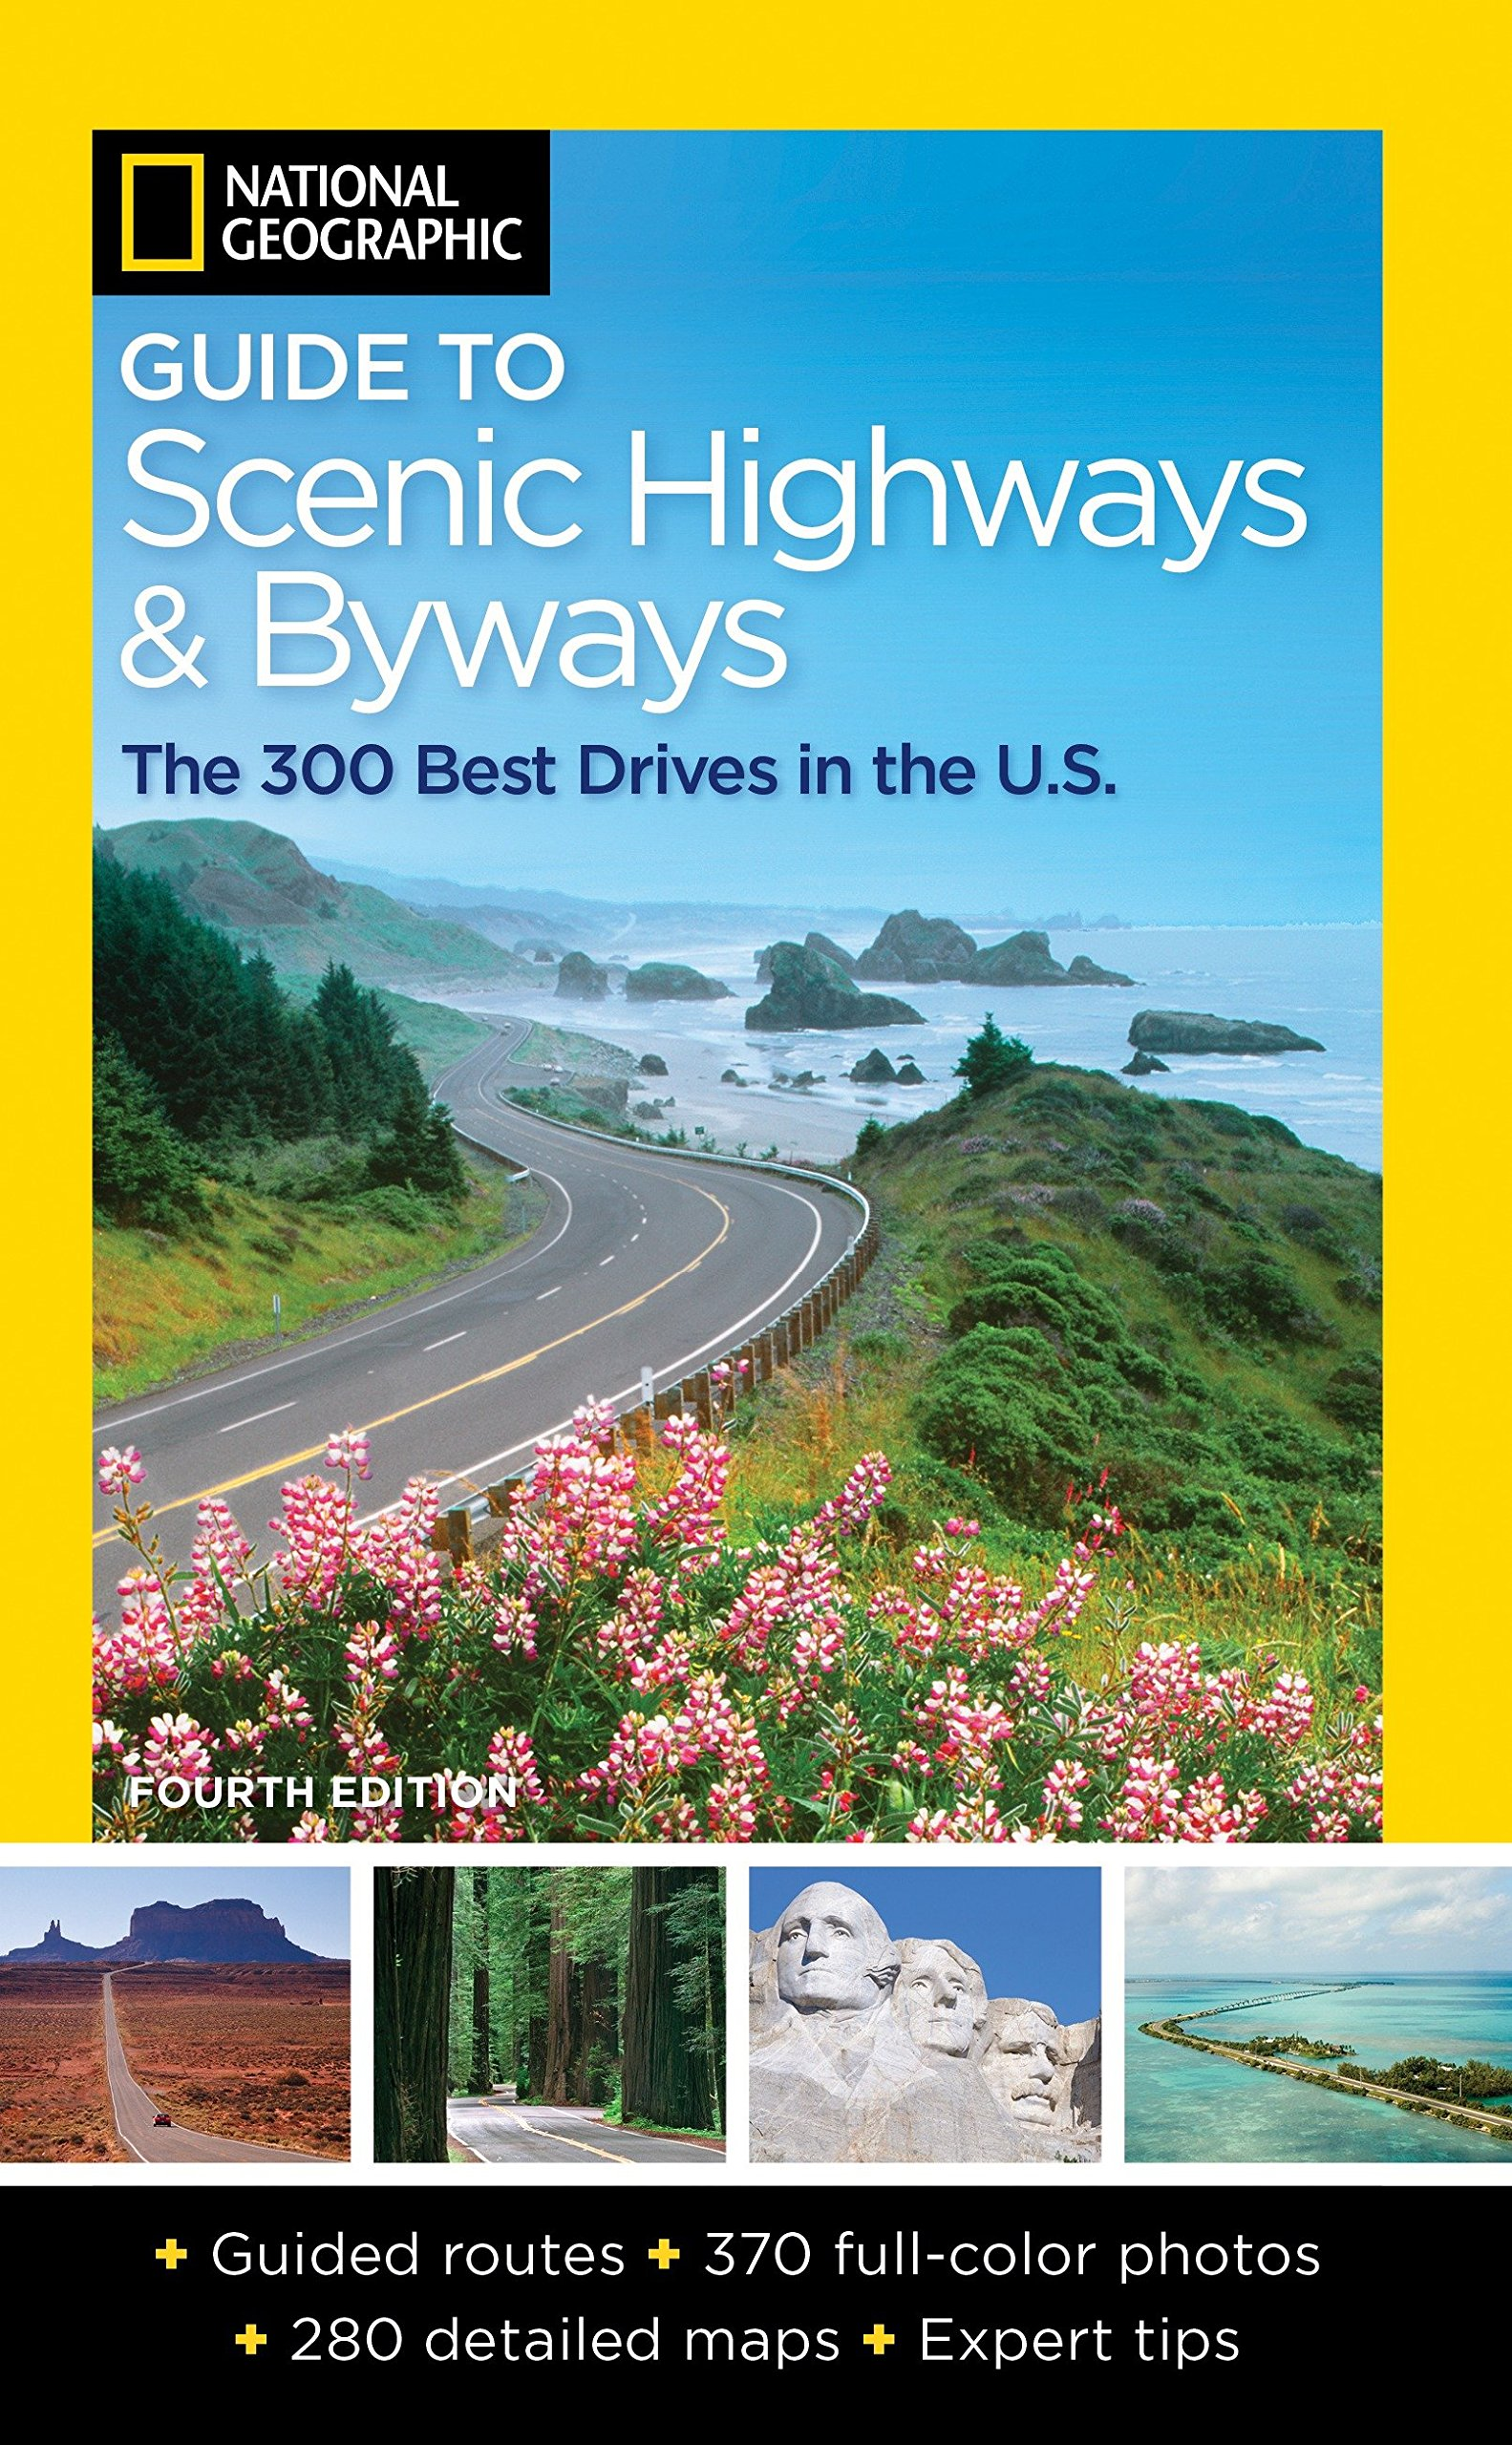 National Geographic Guide to Scenic Highways and Byways, 4th Edition: The 300 Best Drives in the U.S.